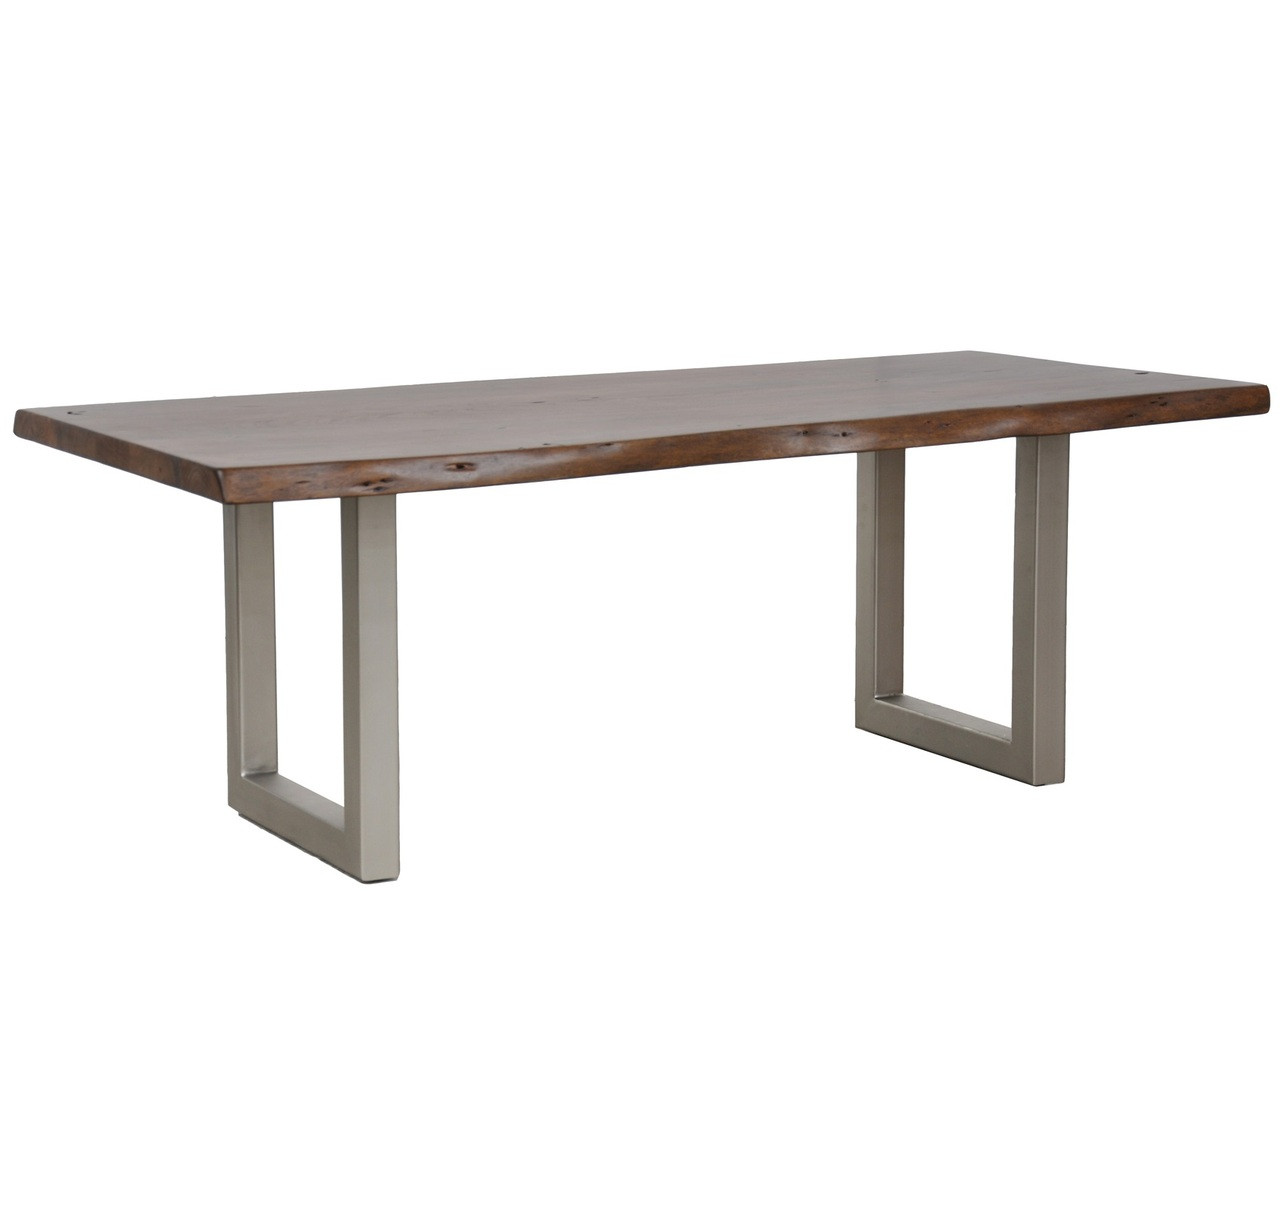 Greatest Montana Solid Wood Metal Leg Dining Table 94